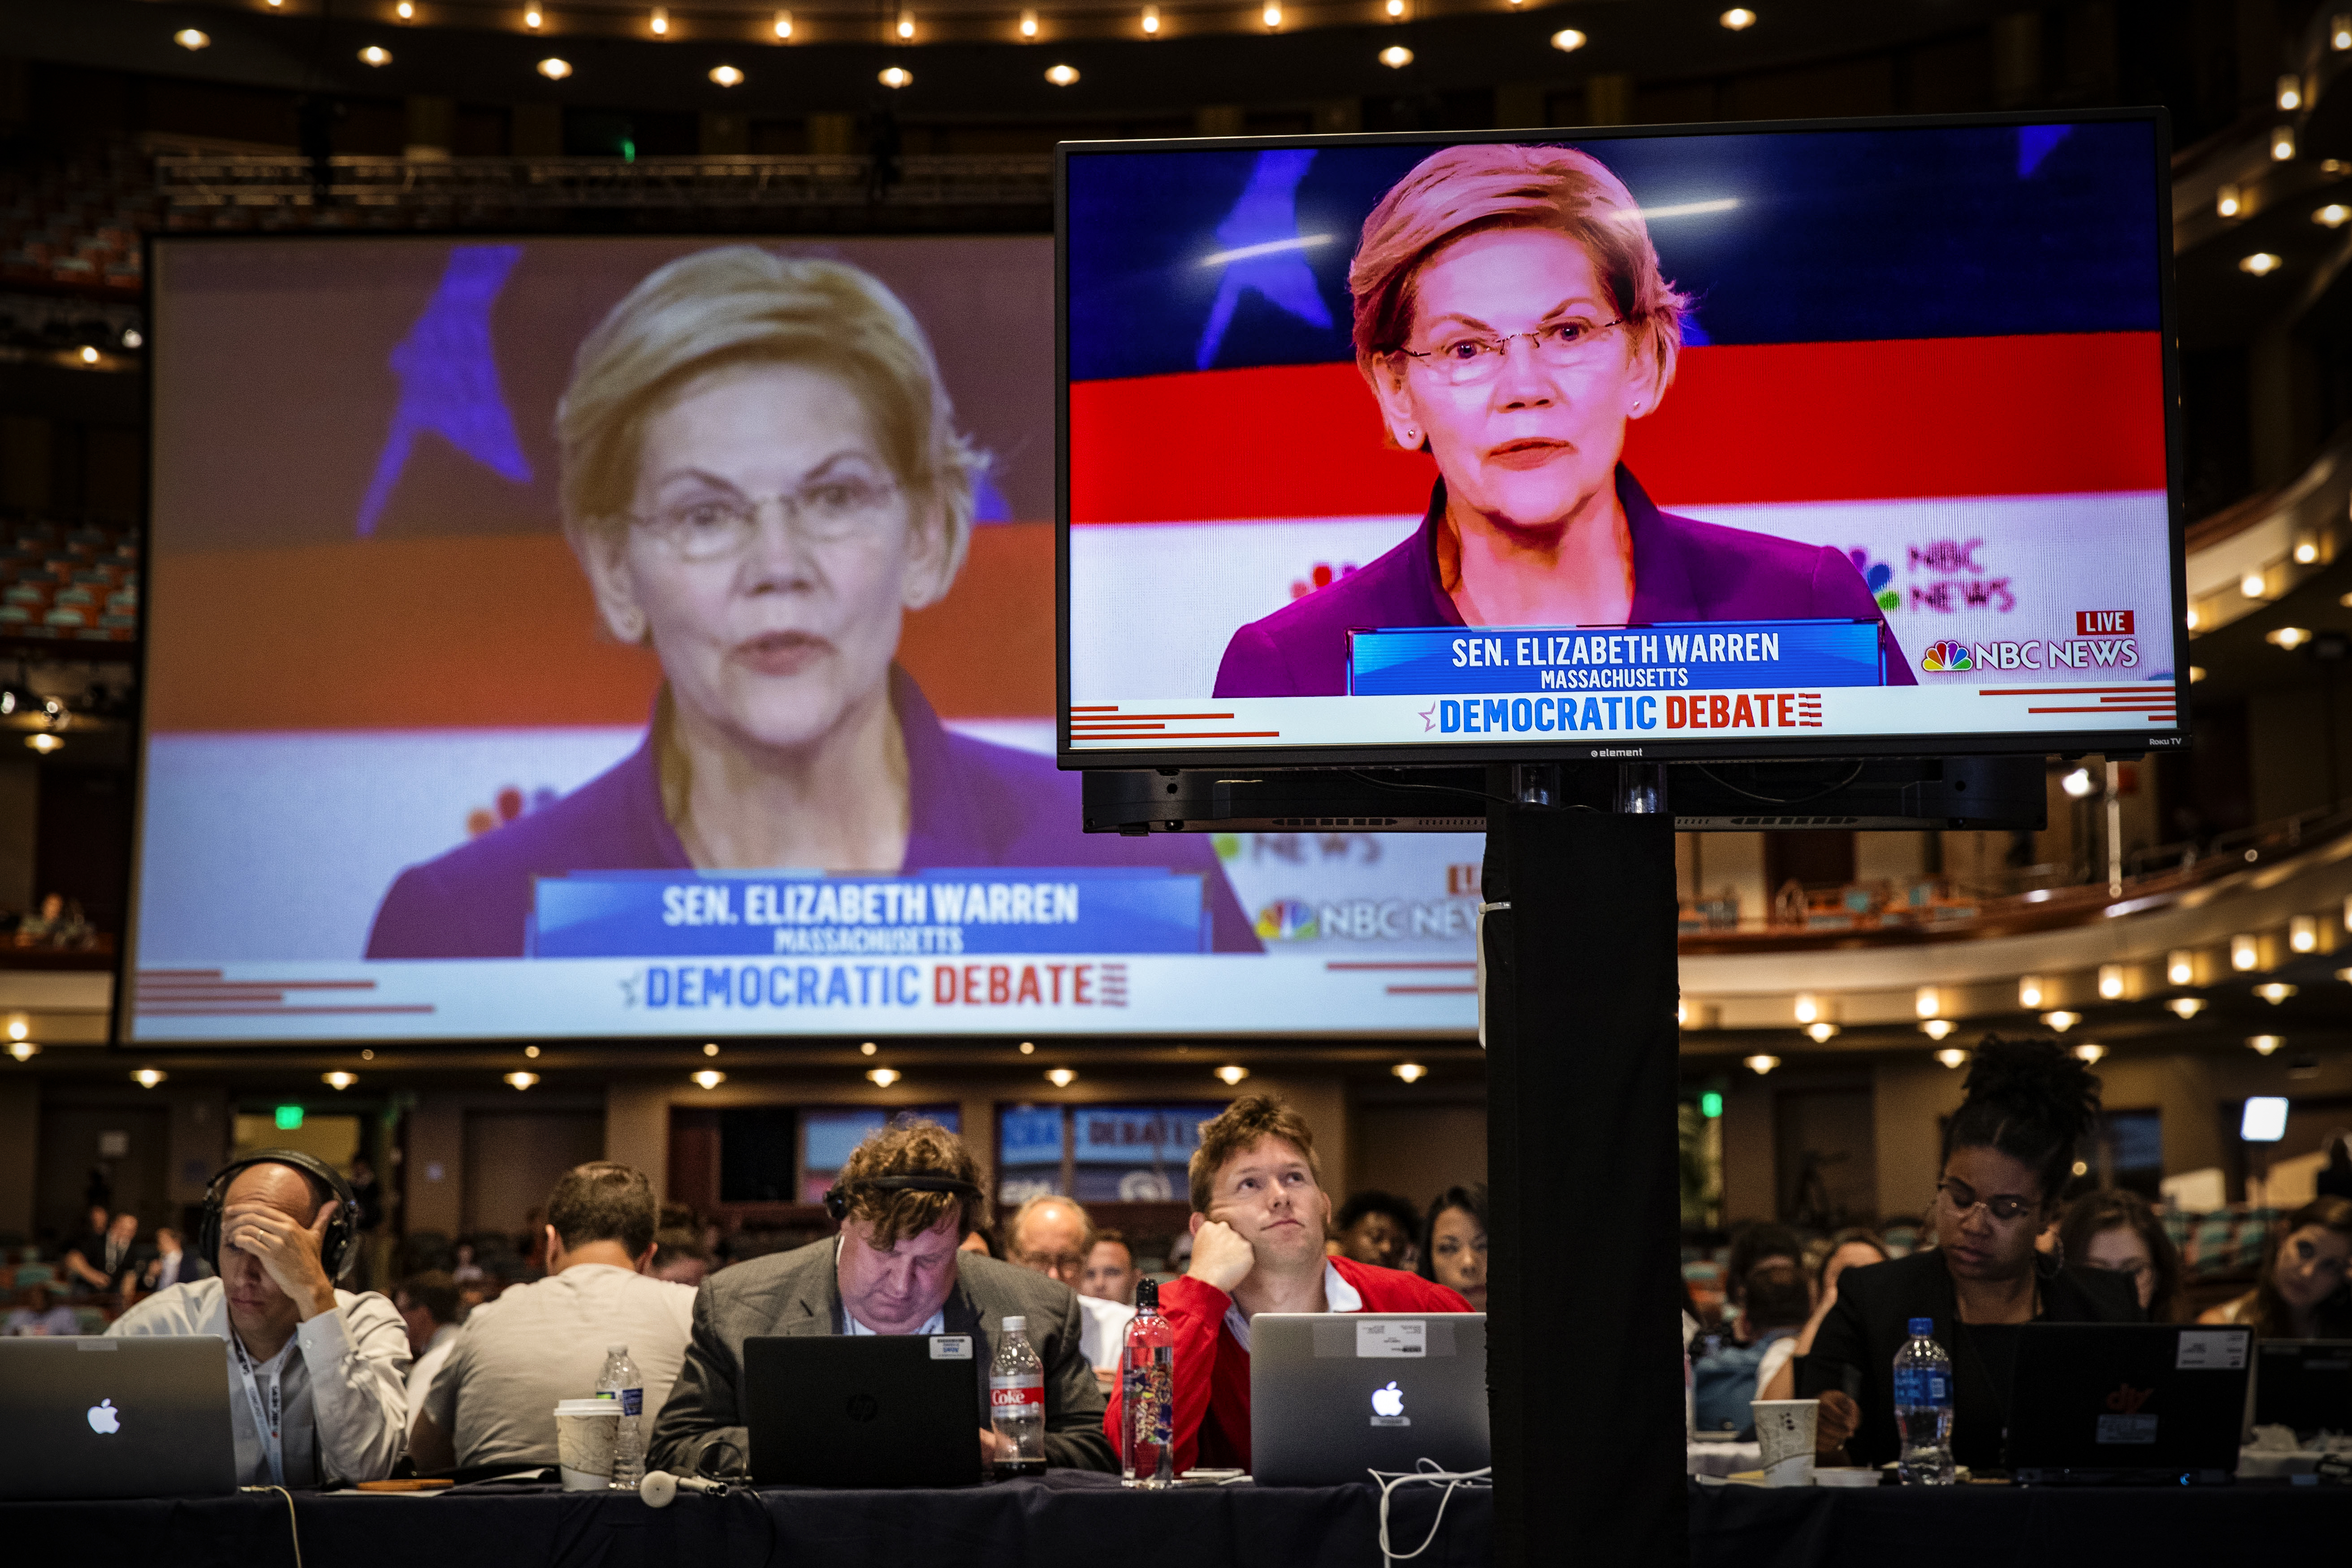 The first Democratic debate shows how far the party has moved to the left